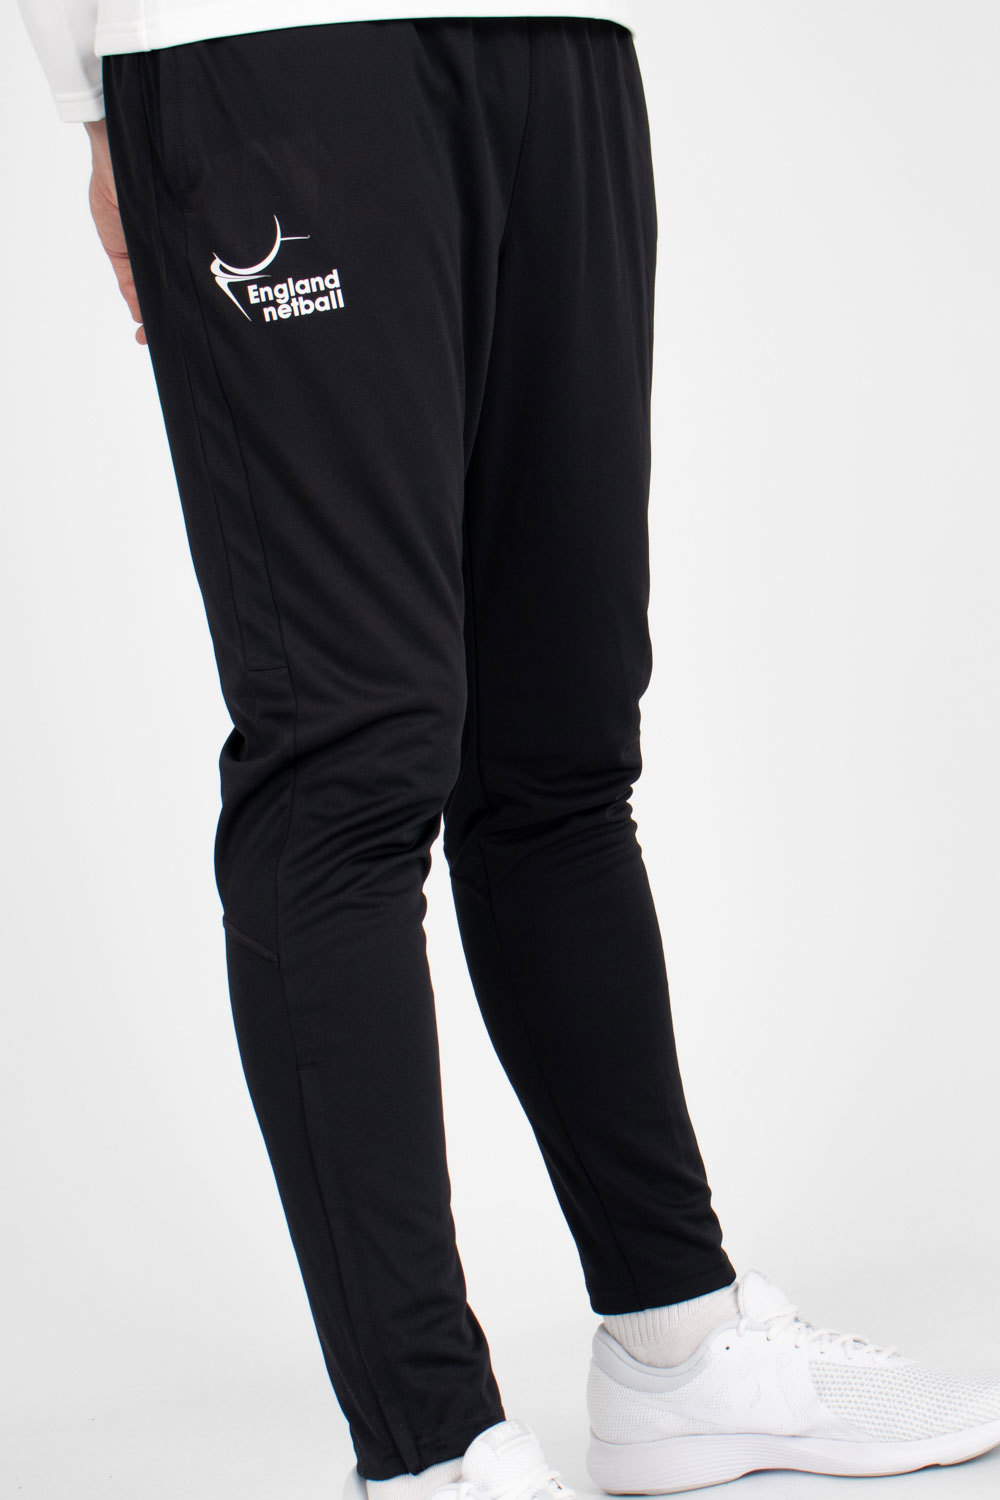 EN-Kitlocker Team White Academy 18 Tech Pant